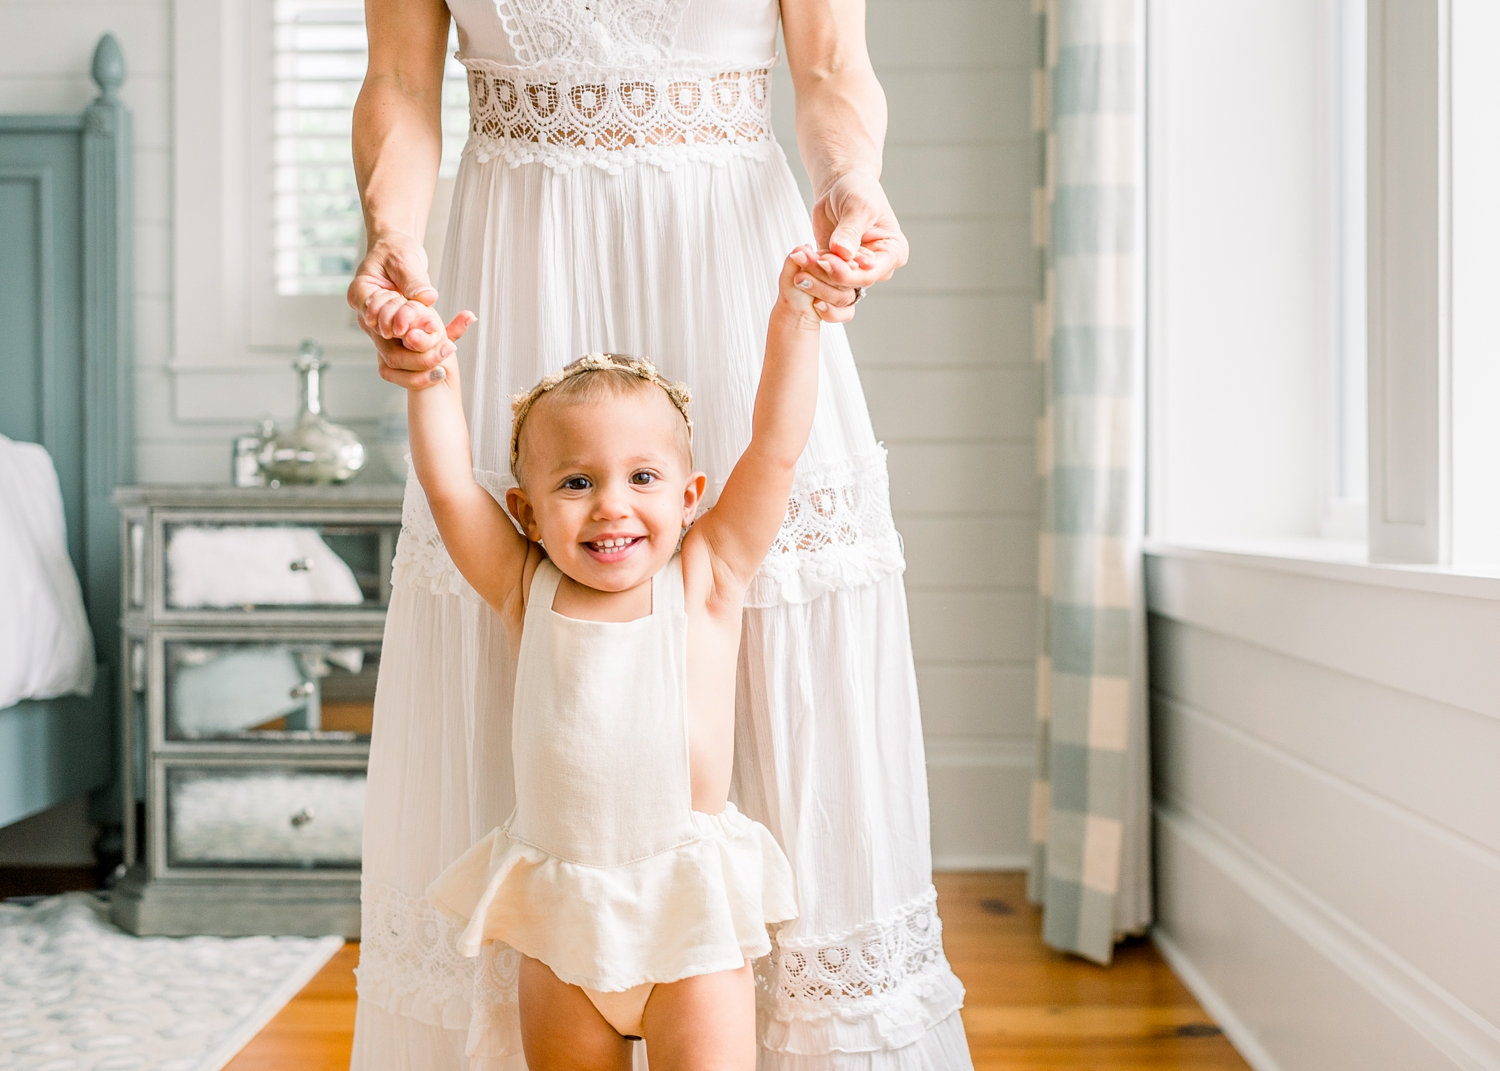 french country master bedroom inspiration, white bedroom inspo, mom holding baby daughter's hands, Rya Duncklee, Shop James